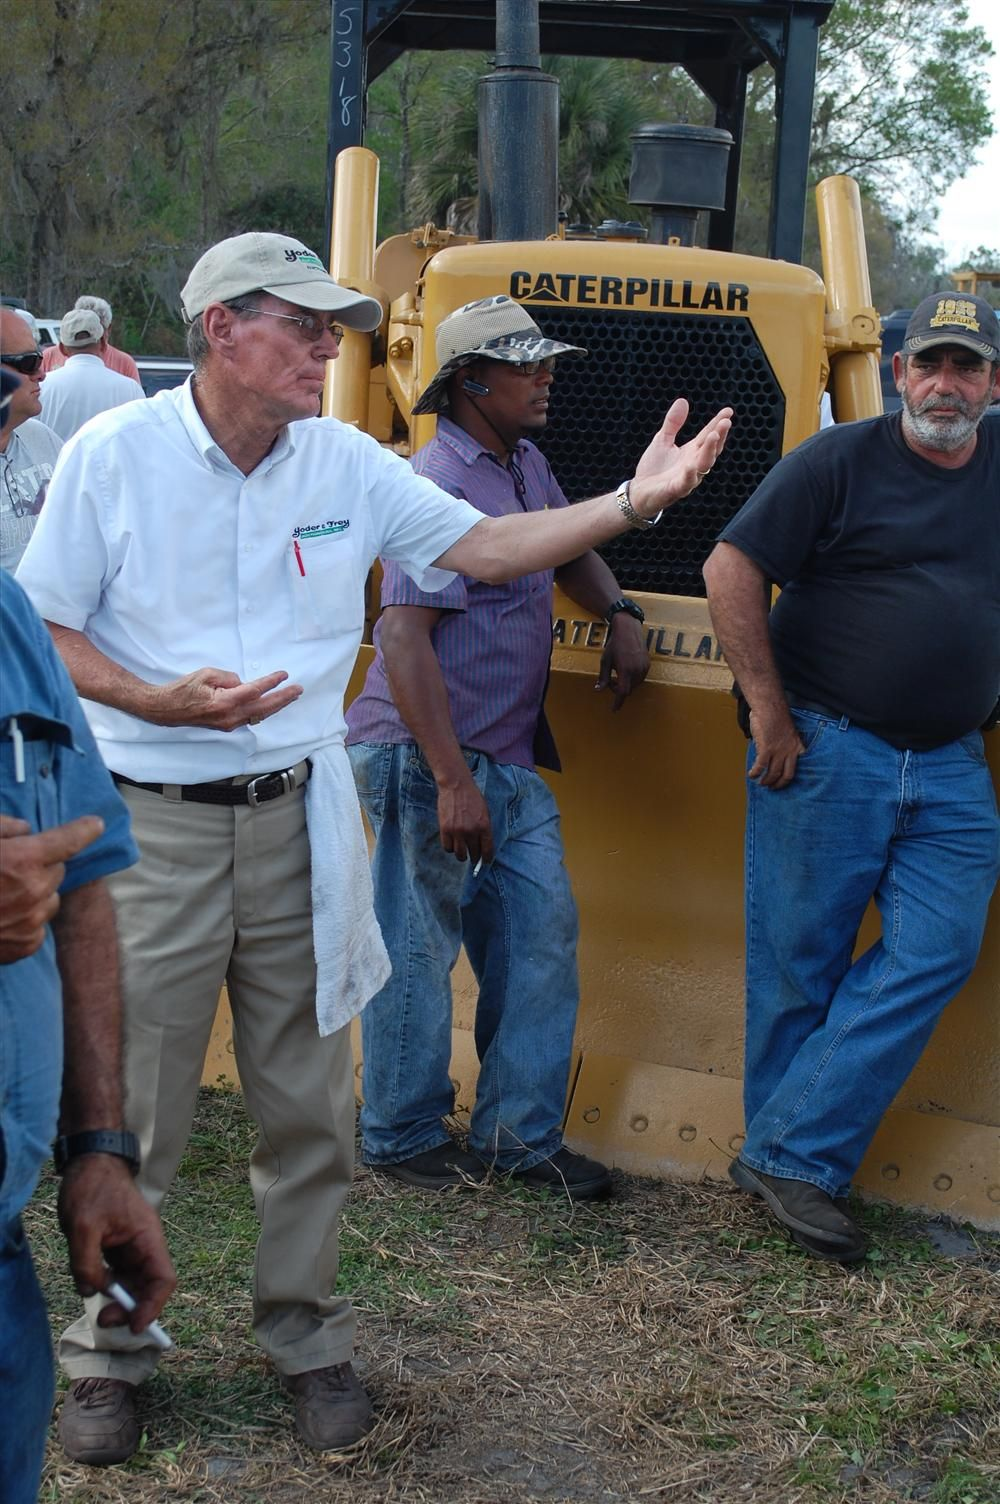 This Caterpillar dozer grabbed the attention of several bidders.